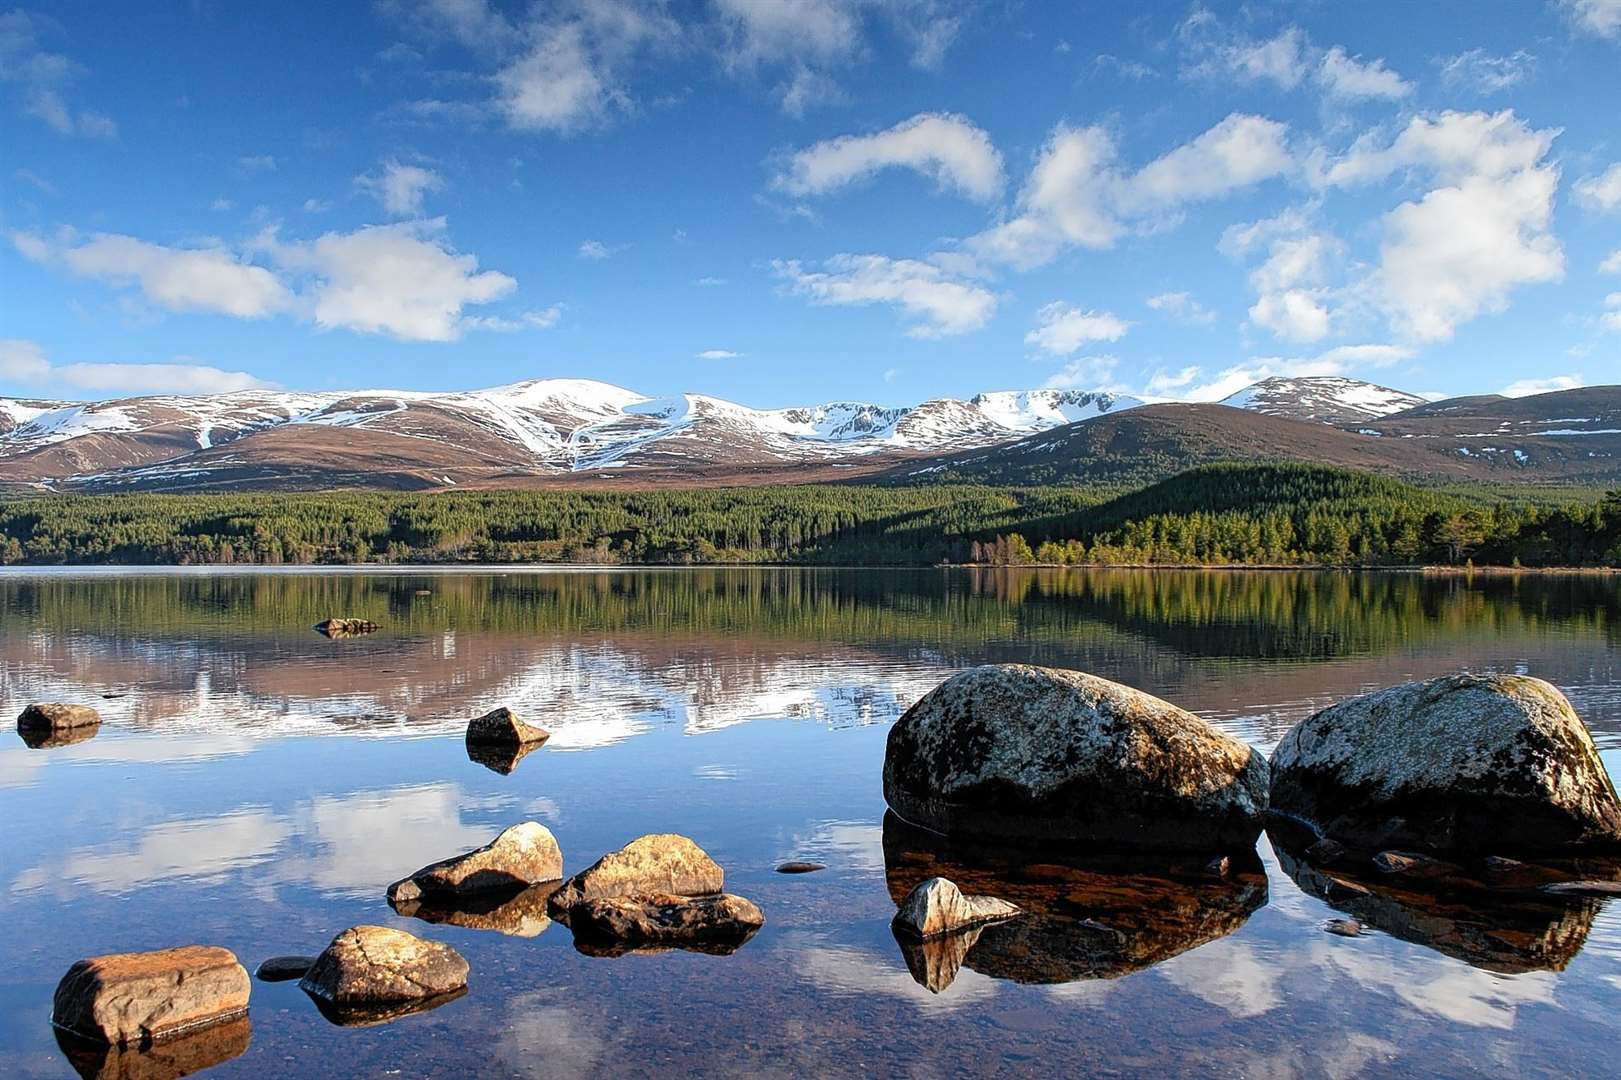 The Cairngorm mountains, as seen from Loch Morlich